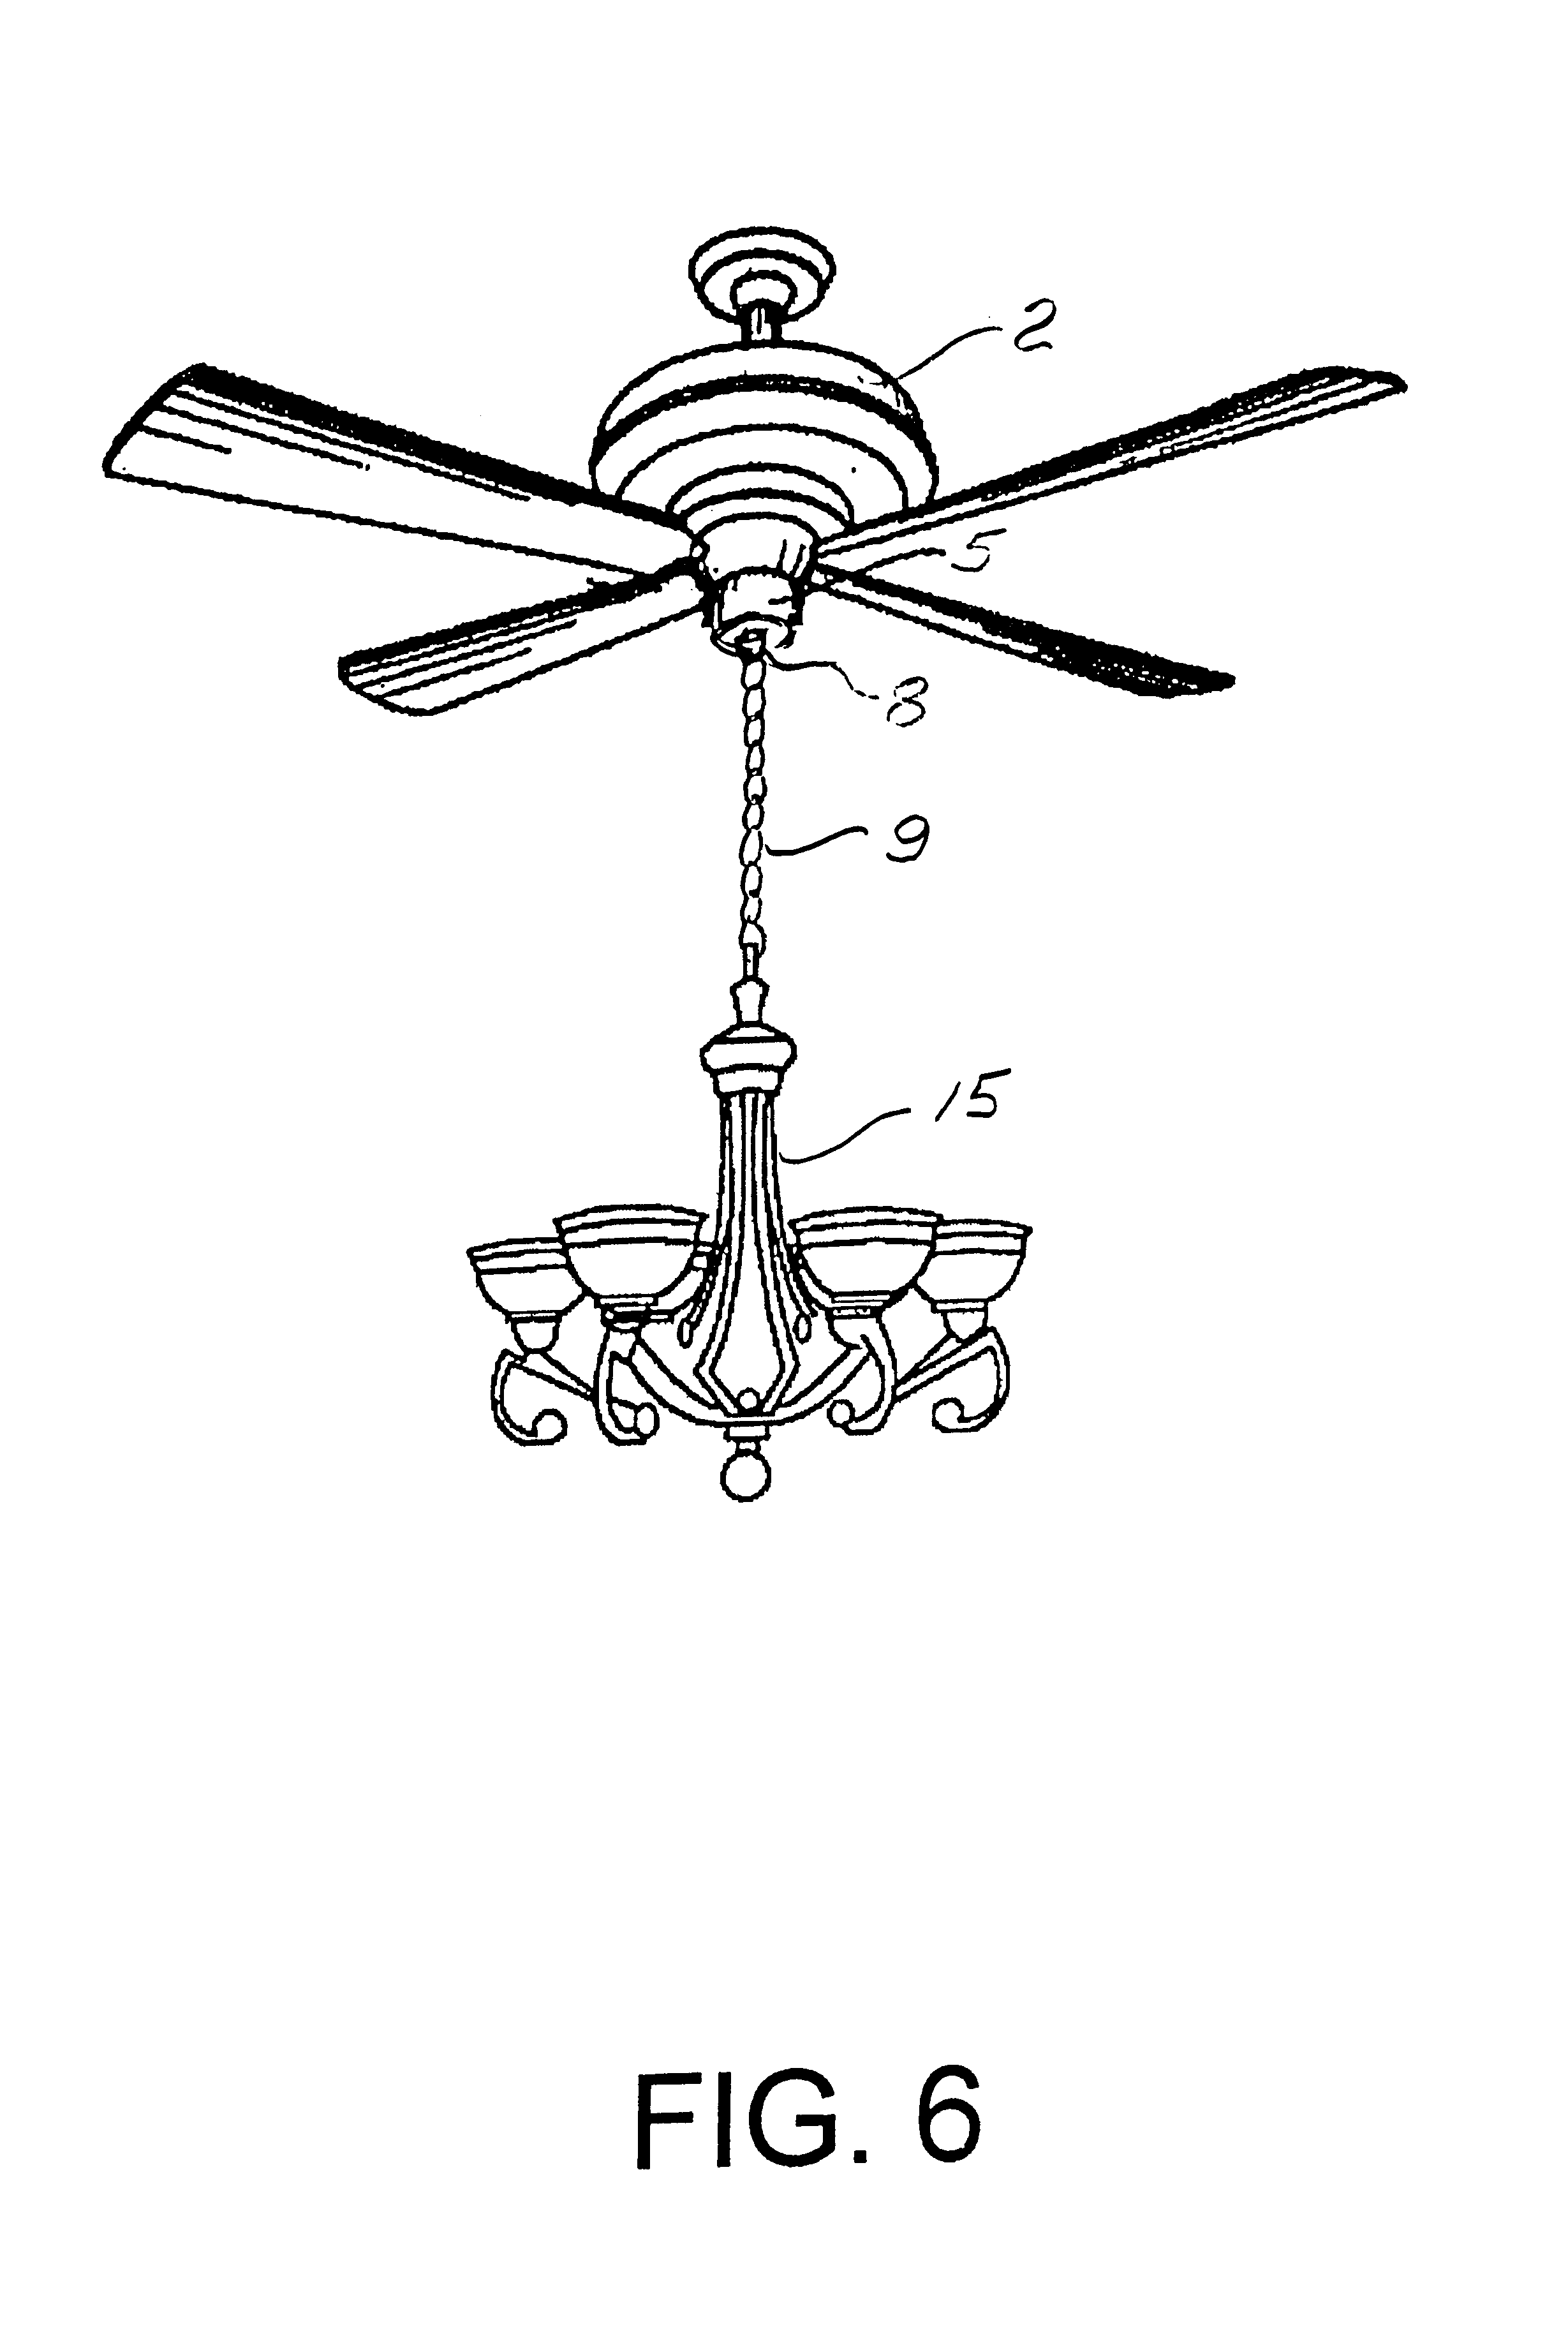 Incandescent Light Bulbs Information further Wiring A Dimmer To A Fan Light Kit additionally Wiring Diagram For Ceiling Fan Light Fixture together with Fluorescent Light Parts Diagram further 3 Sd Floor Fan Wiring Diagram. on chandelier wiring